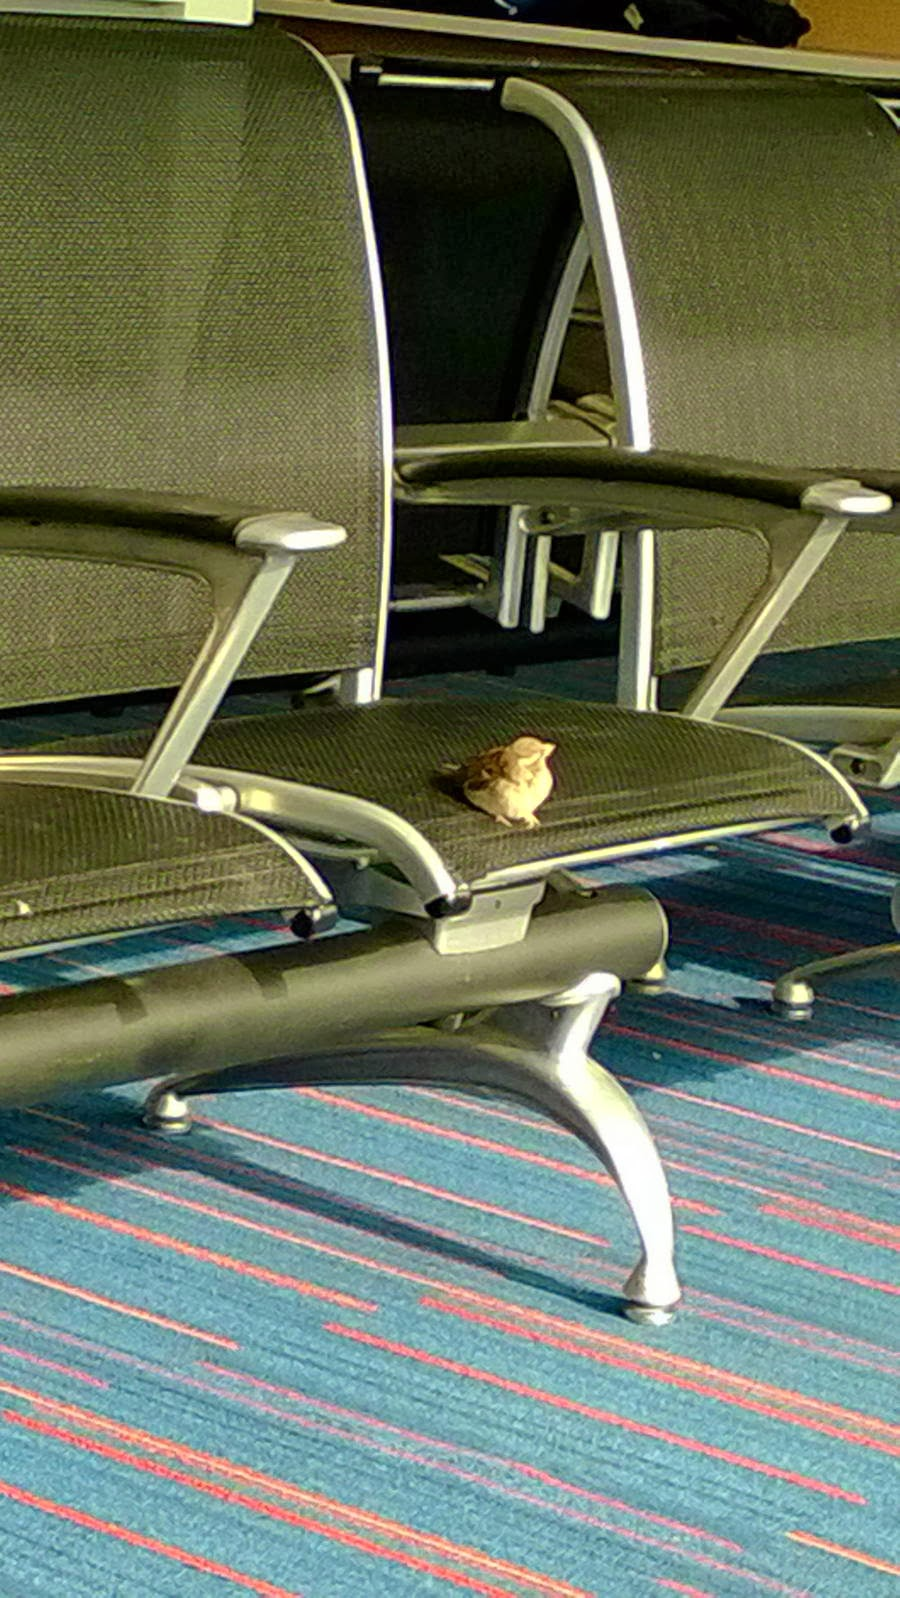 Funny animals of the week - 31 January 2014 (40 pics), bird perches in an airport chair